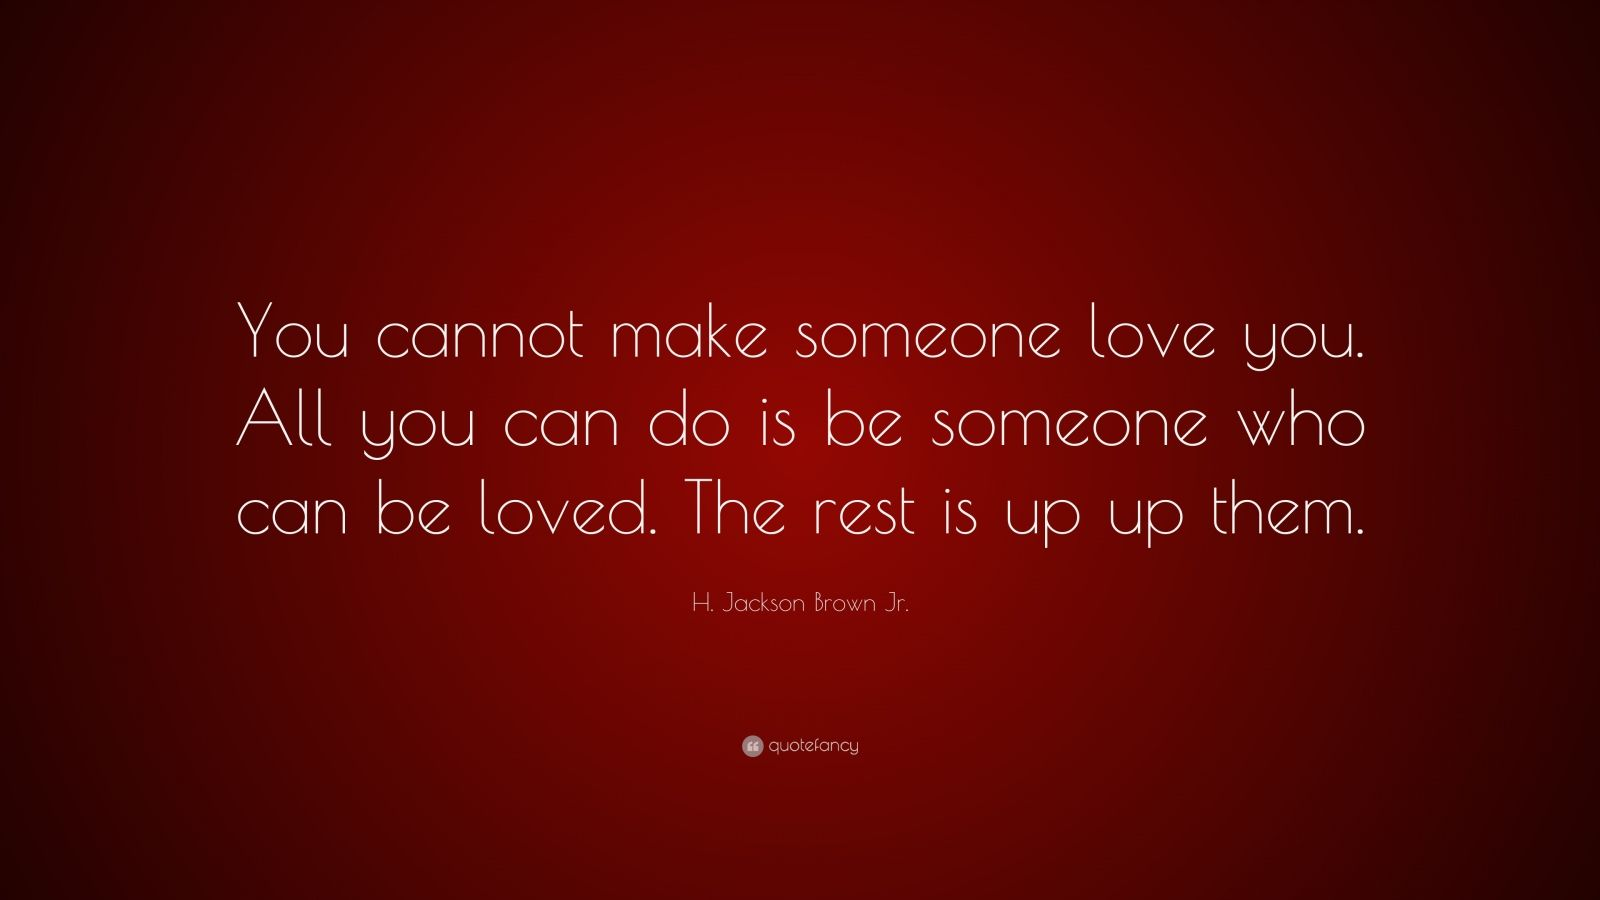 "H. Jackson Brown Jr. Quote: ""You cannot make someone love you. All you can do is be someone who can be loved. The rest is up up them."""